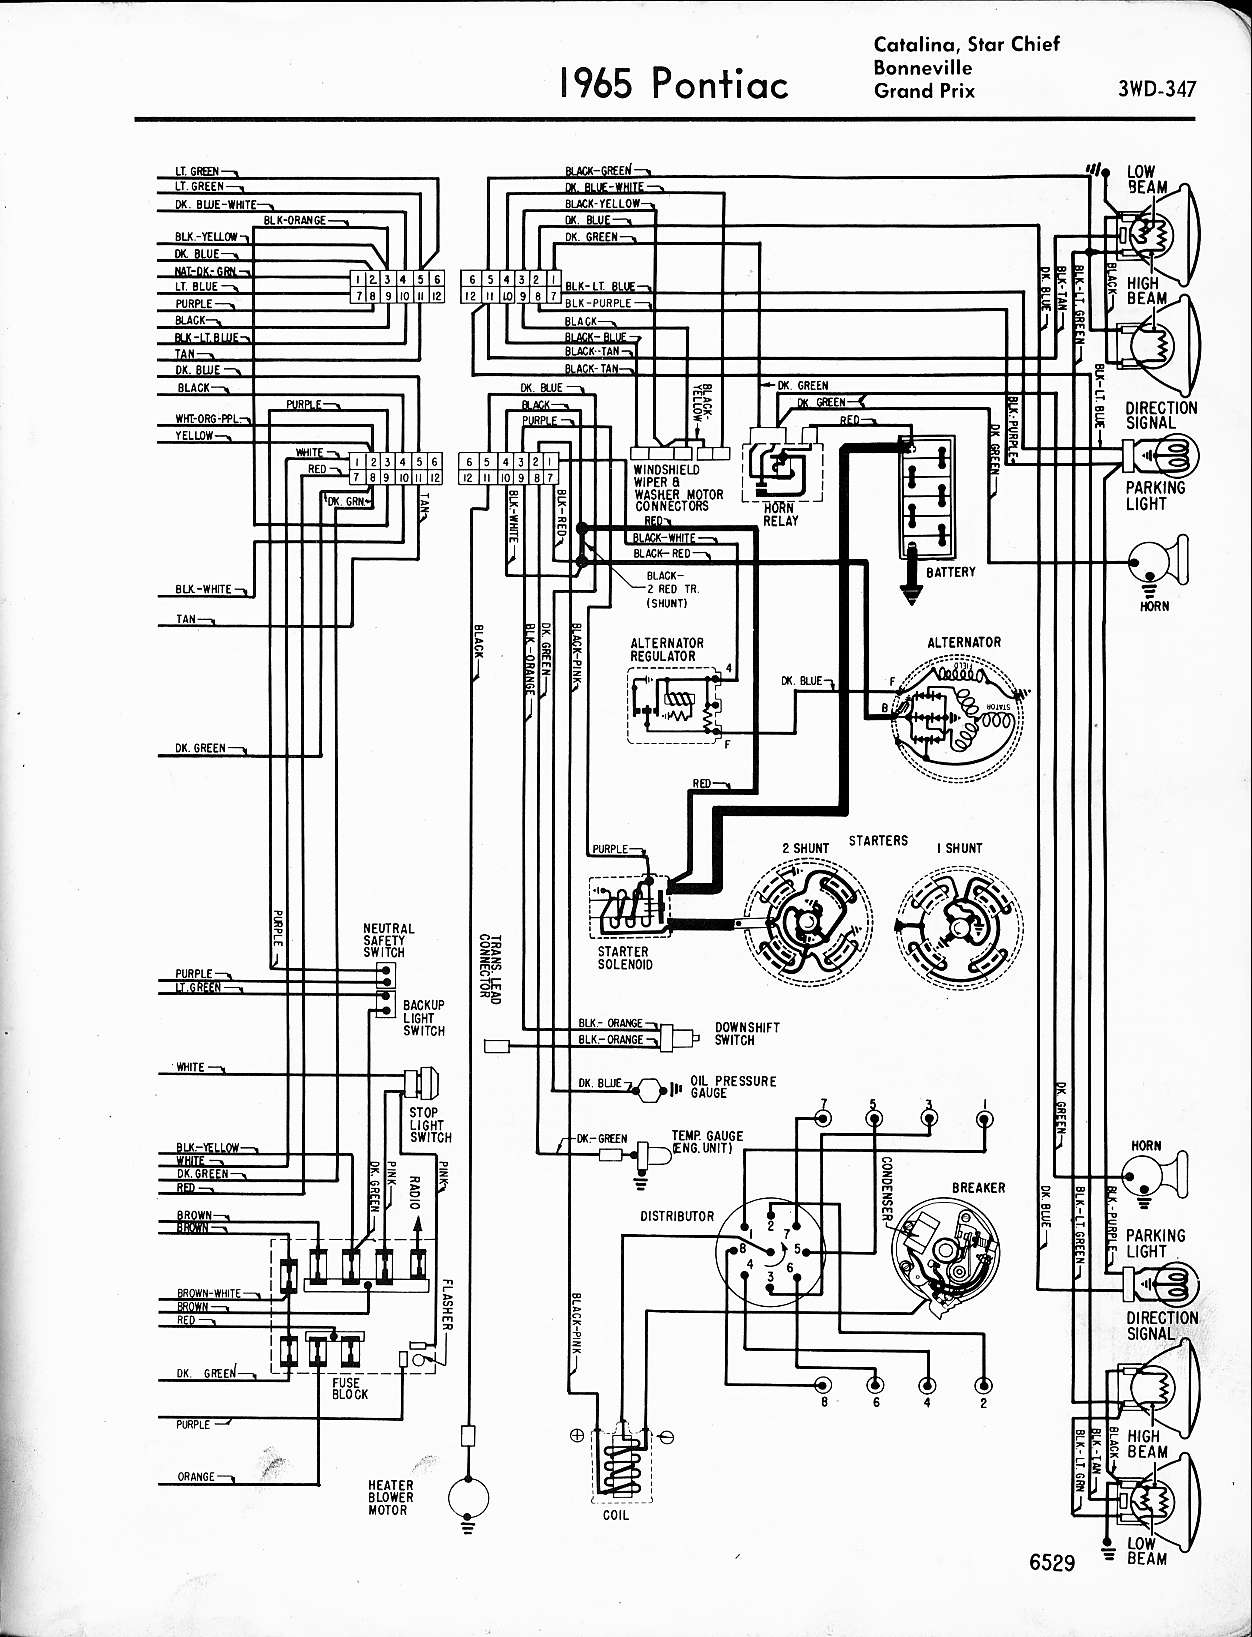 72 F250 Wiring Diagram on 1969 vw beetle fuse box